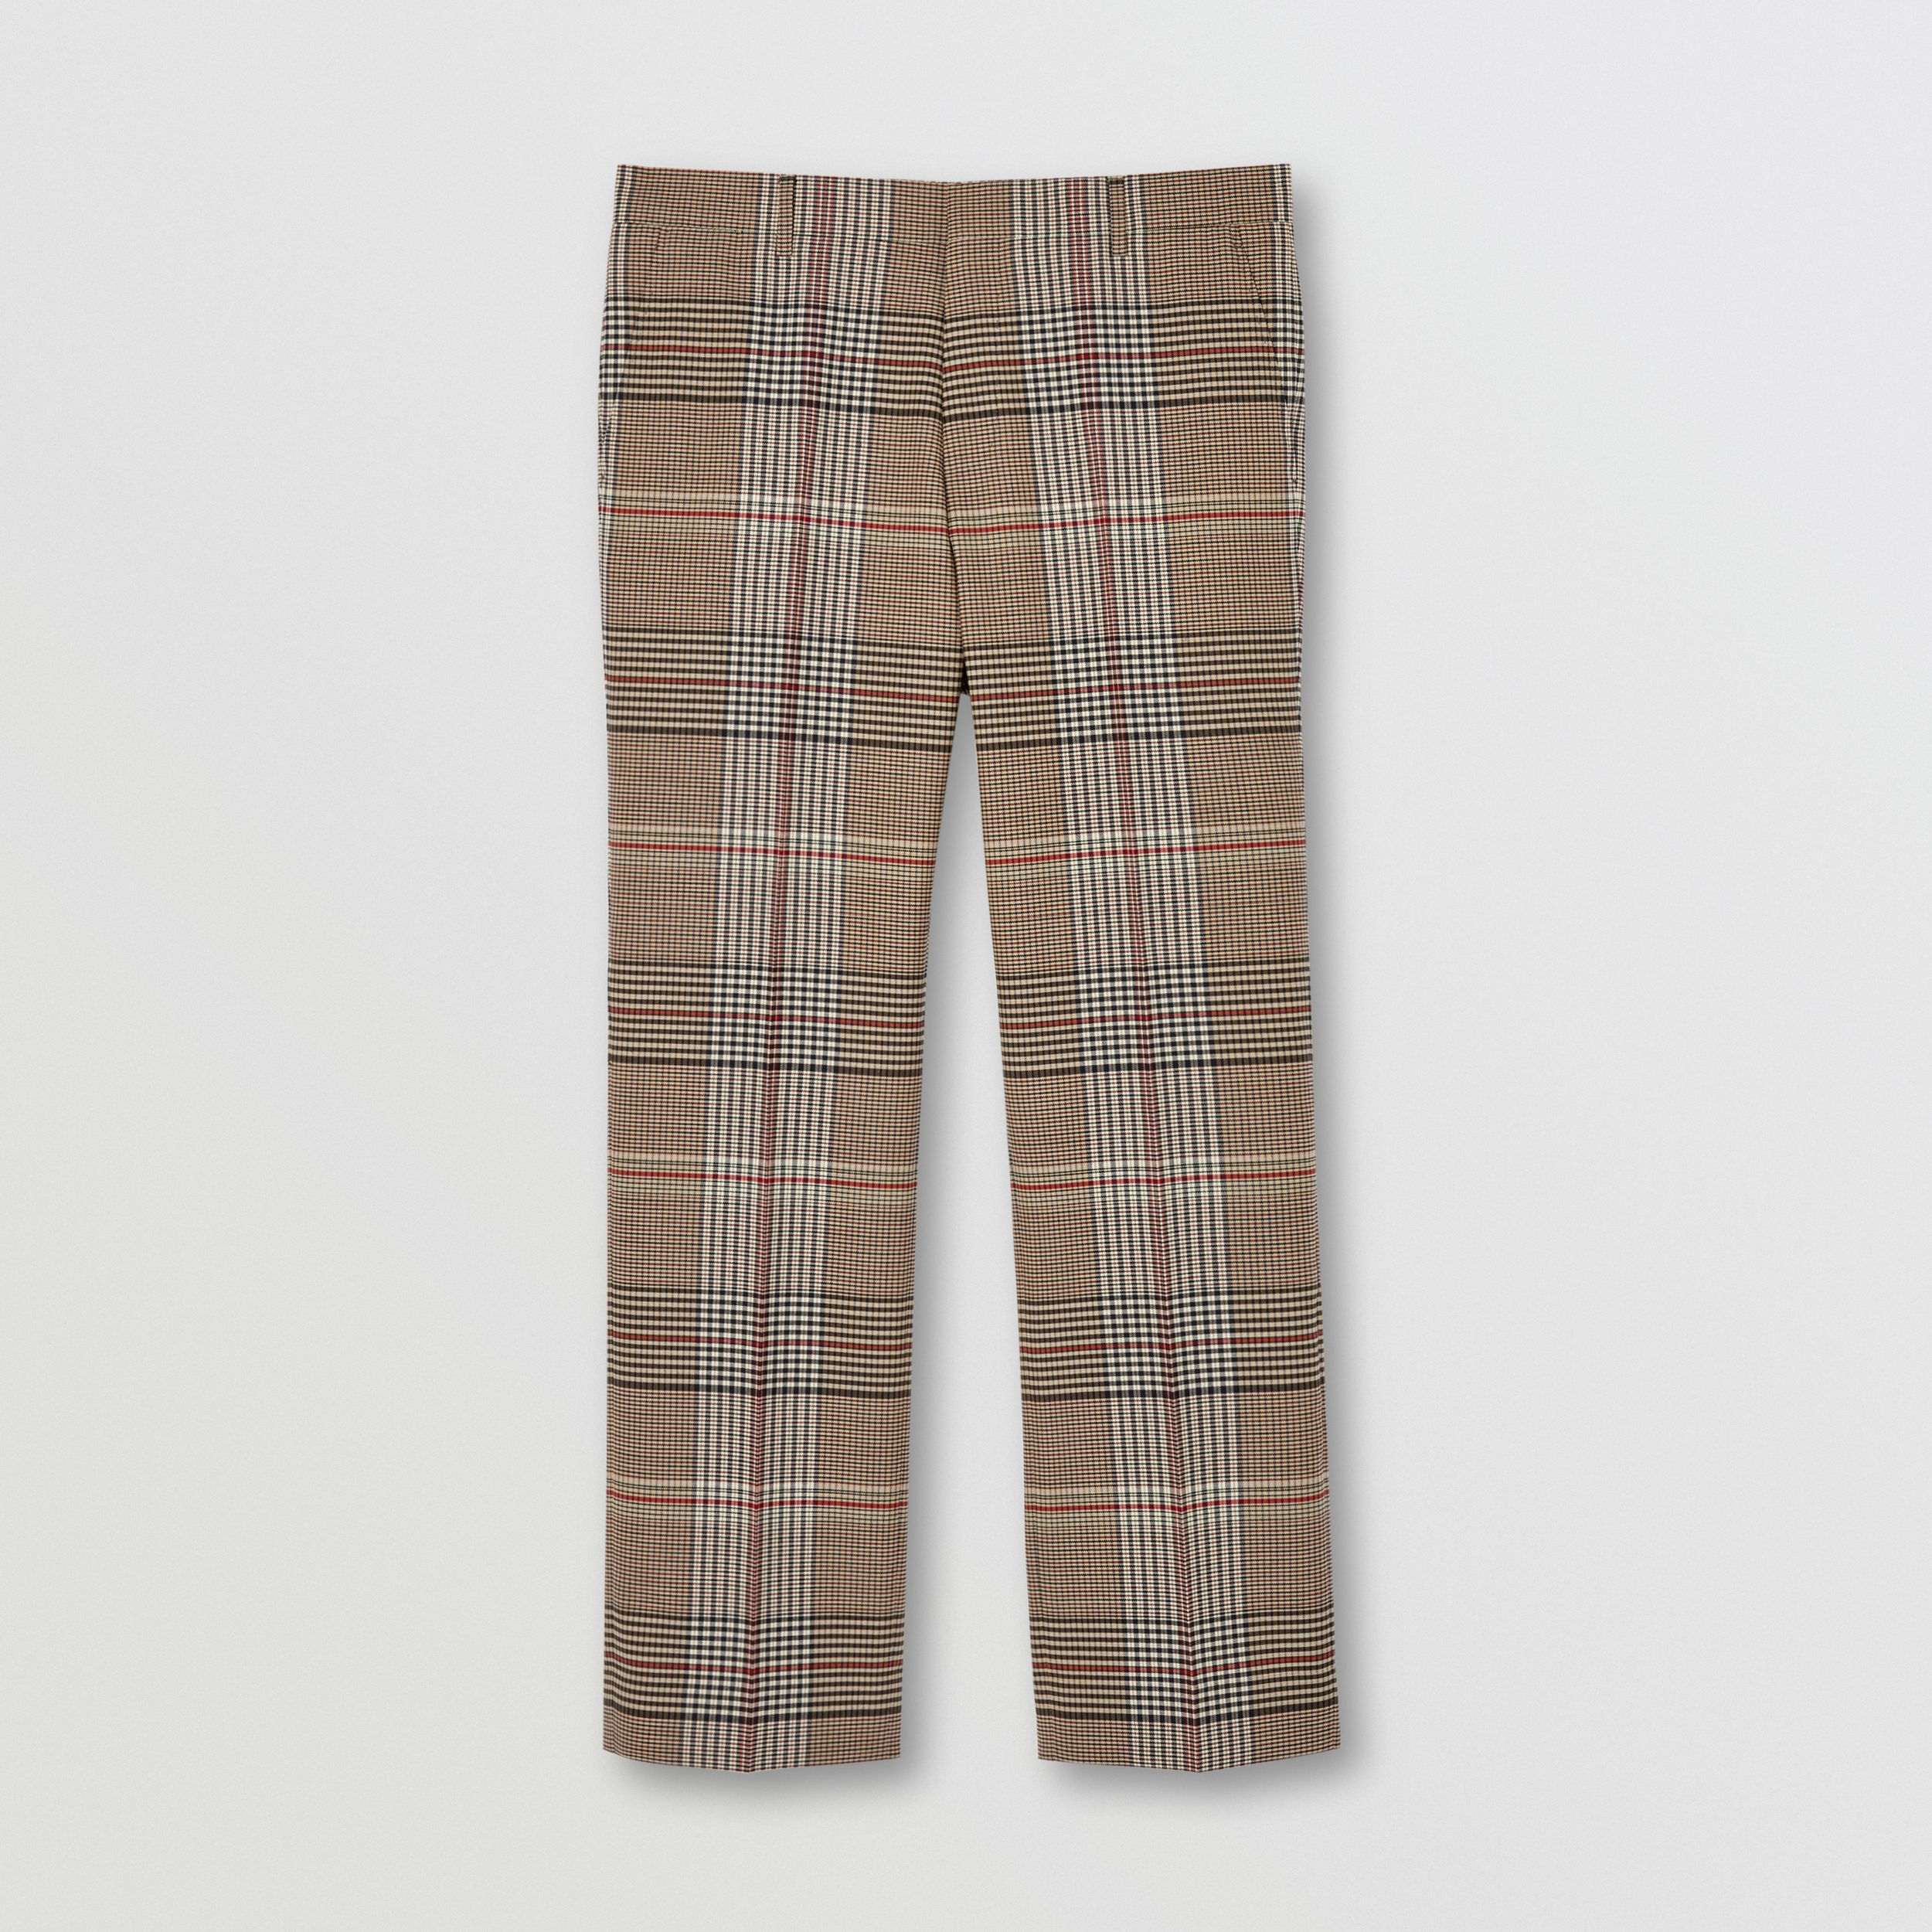 Check Wool Tailored Trousers in Beige - Men | Burberry - 4